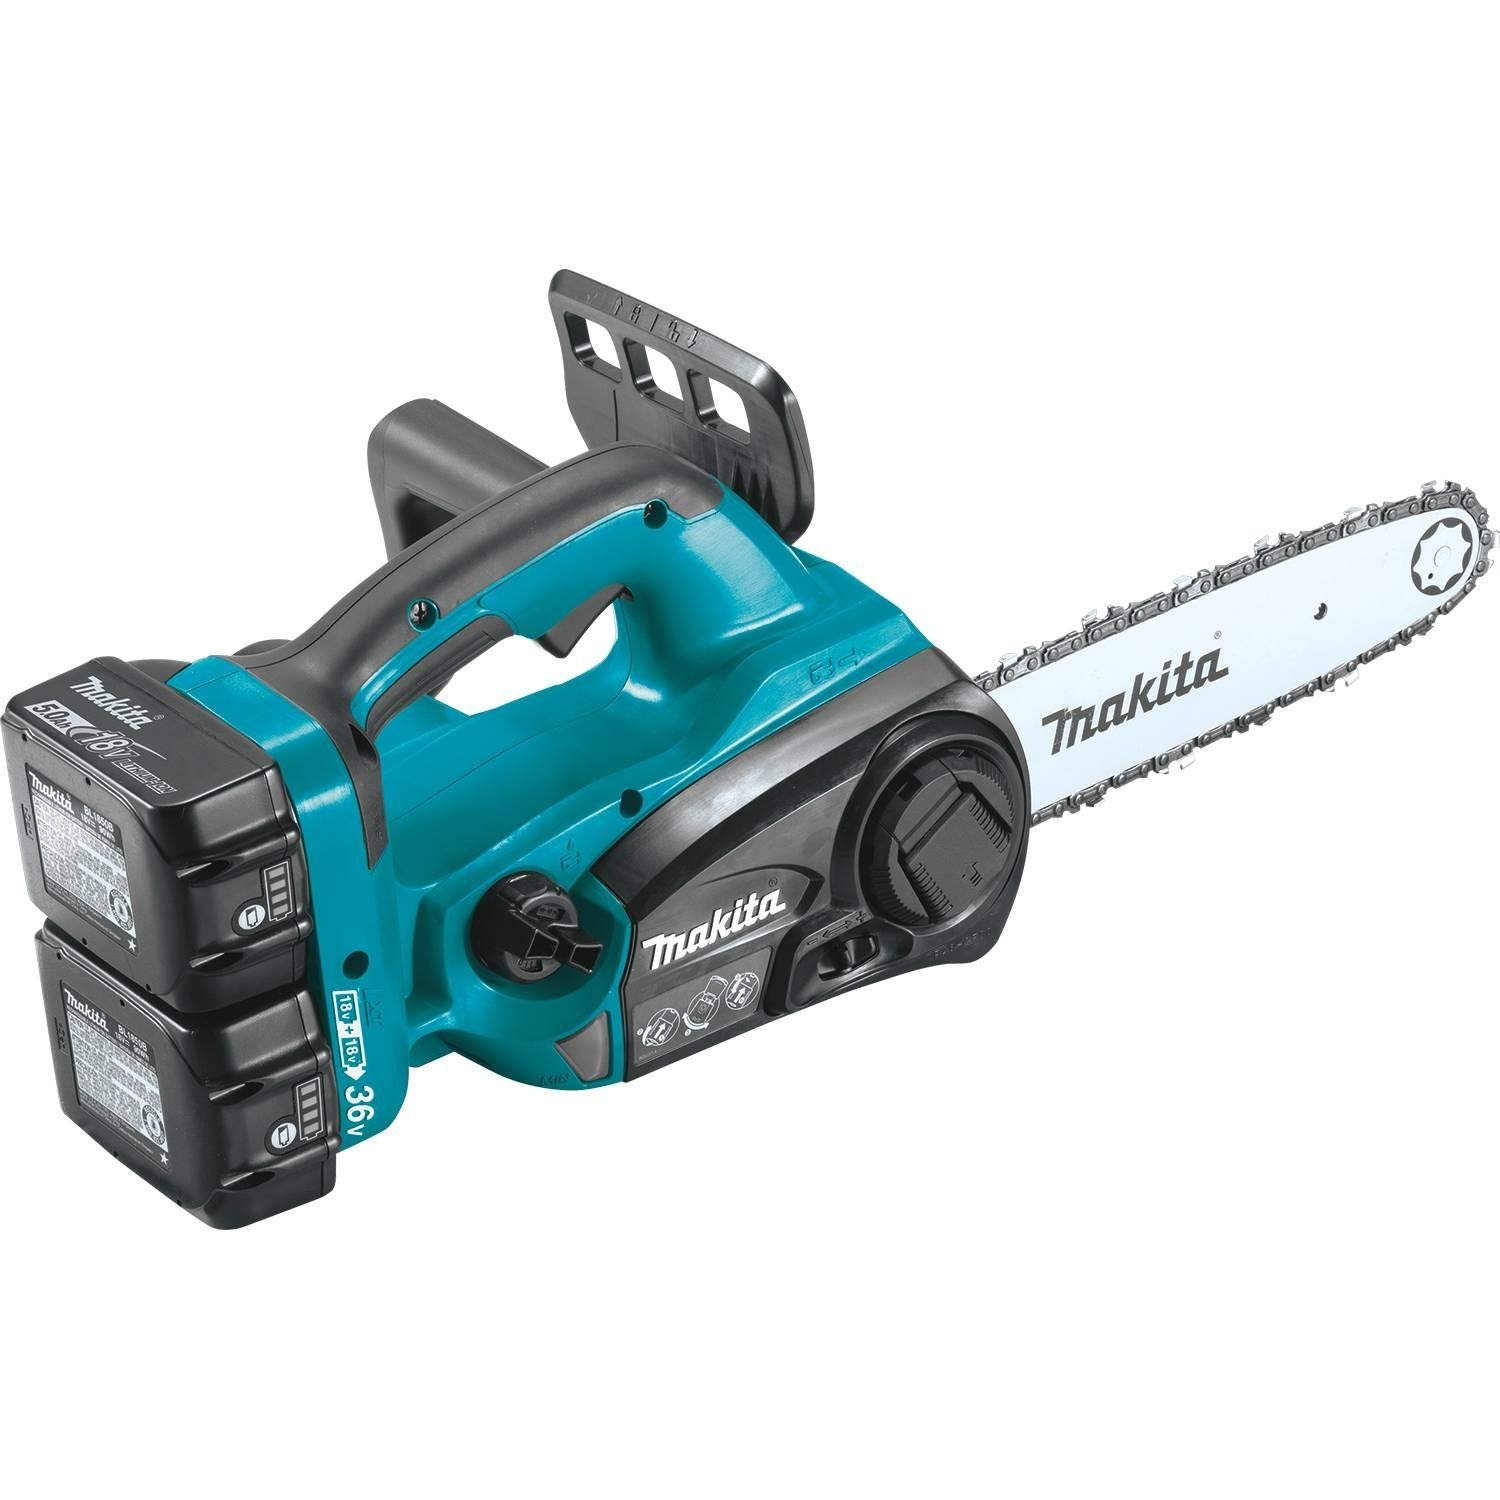 Makita XCU02PT1 Chainsaws product image 2